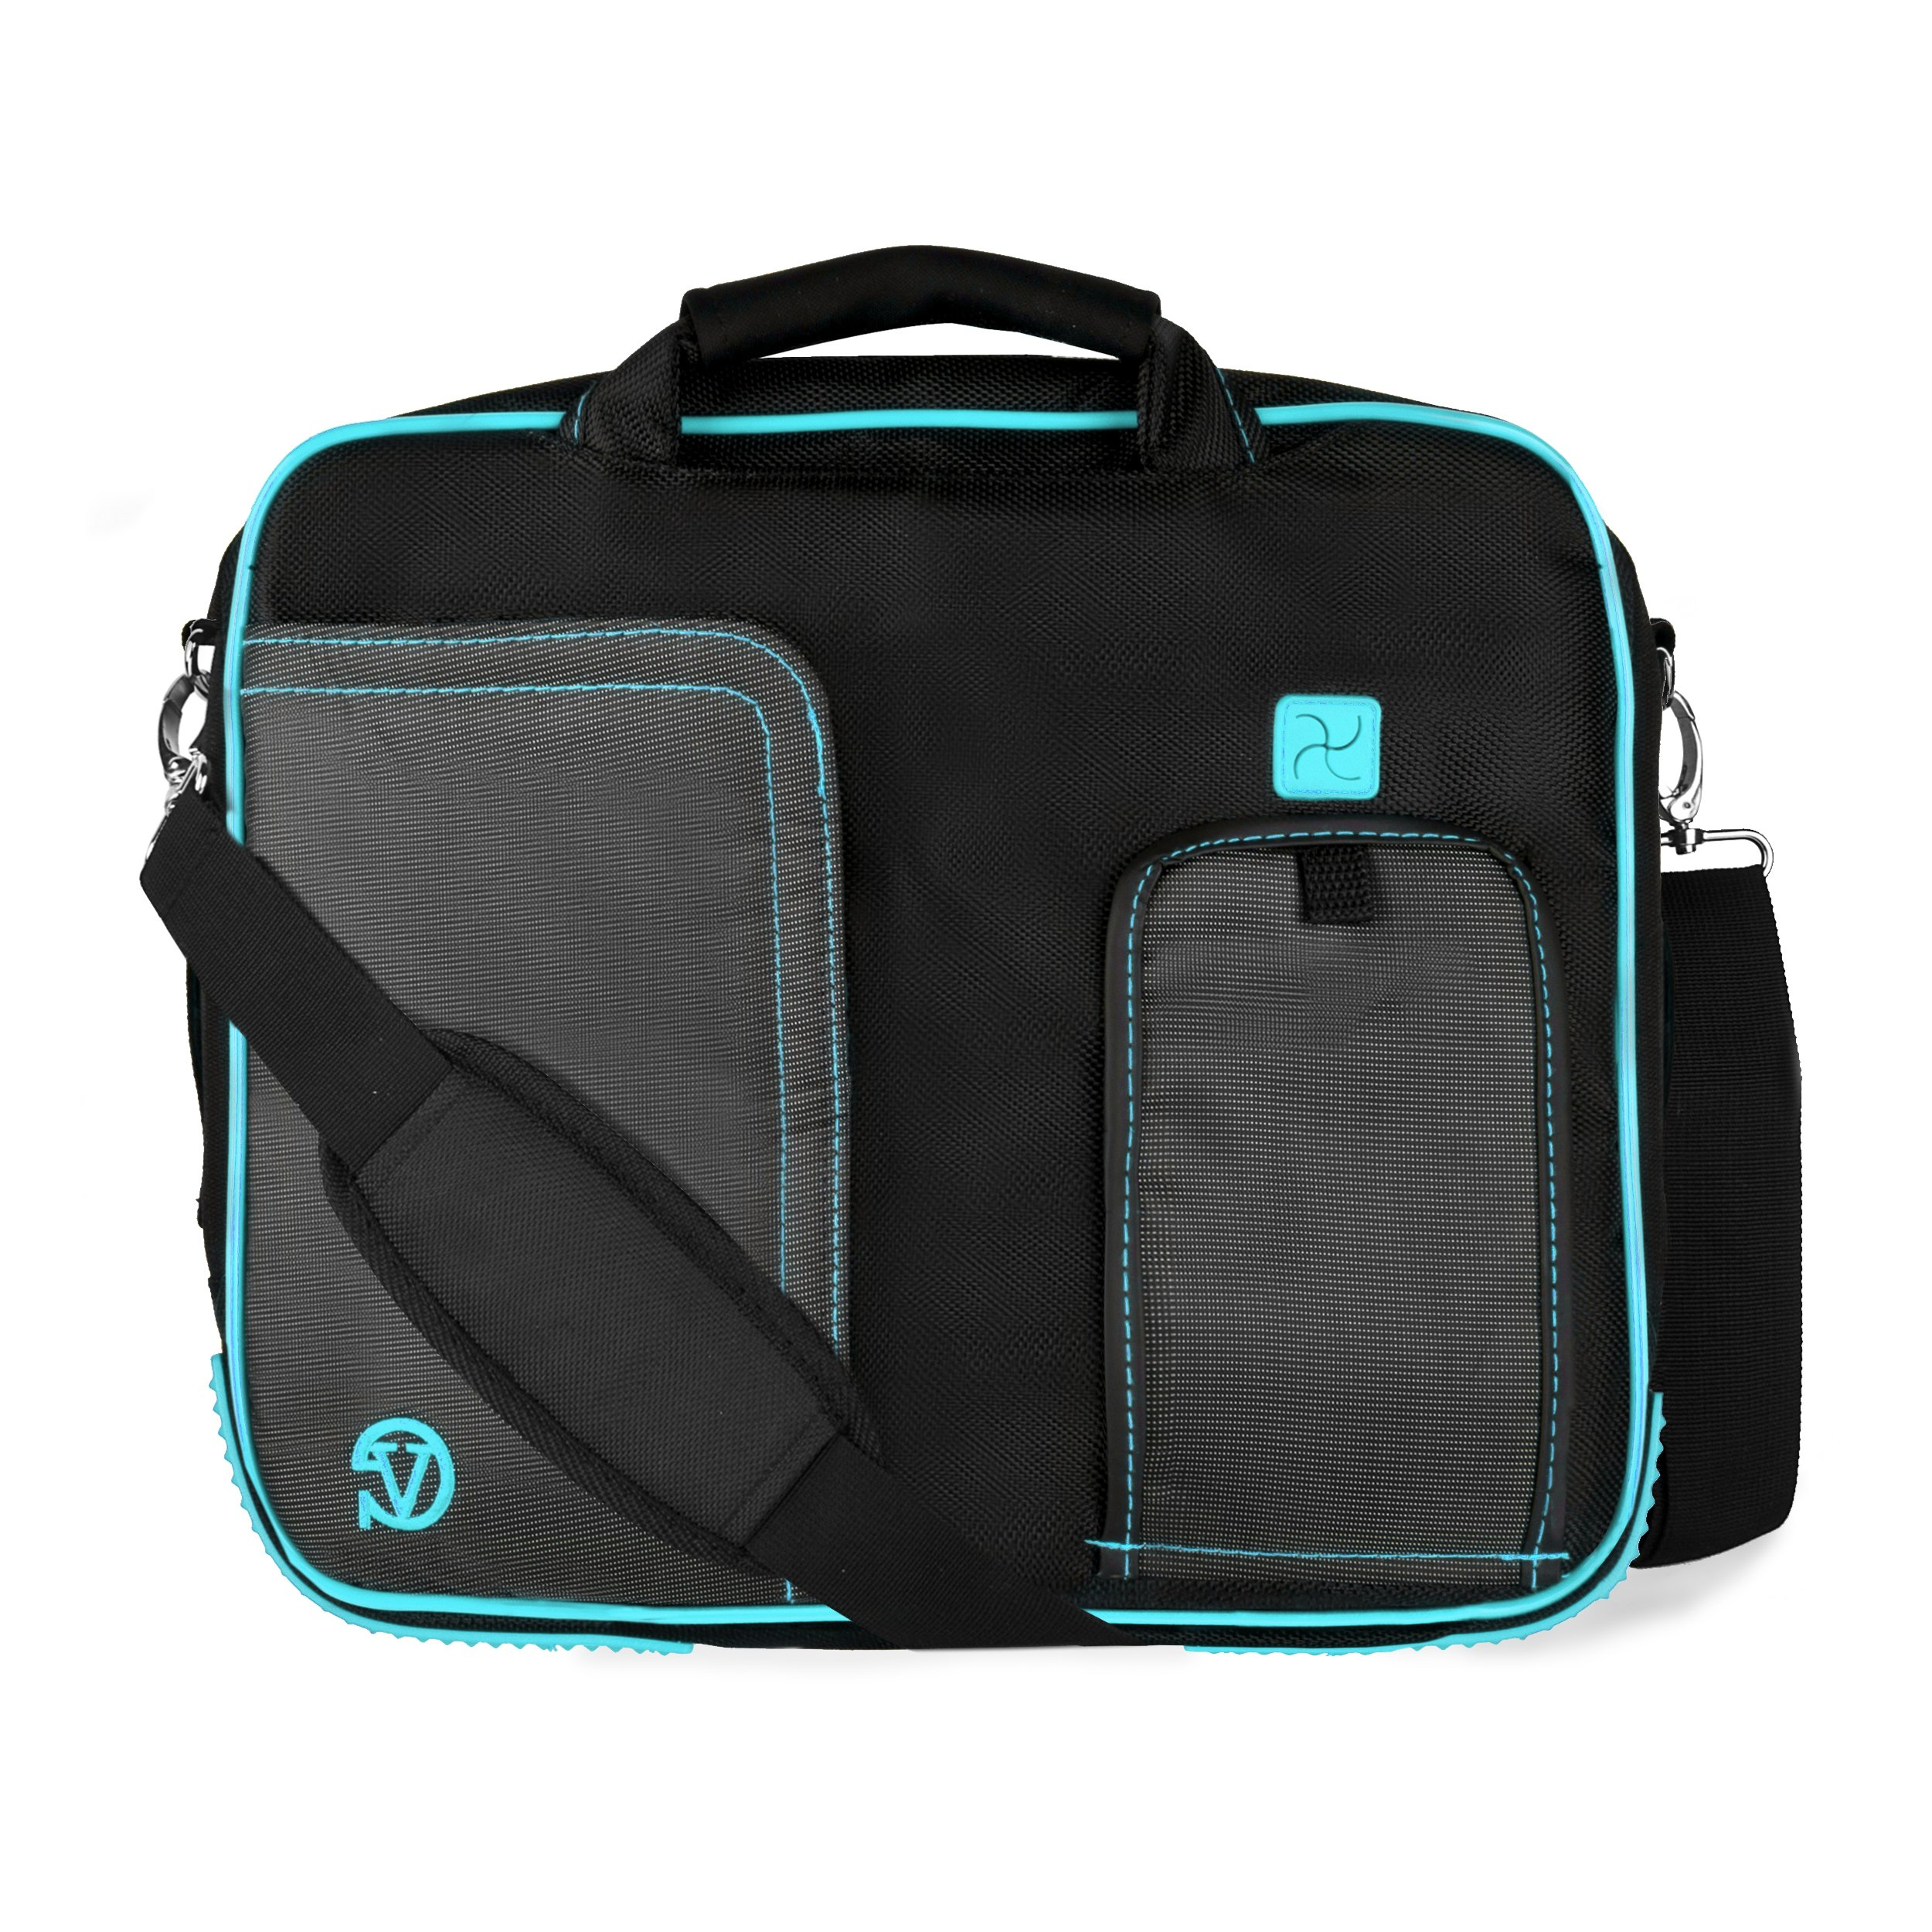 Business/Travel/College Aqua Messenger Bag/Briefcase for 15.4'' Apple MacBooks